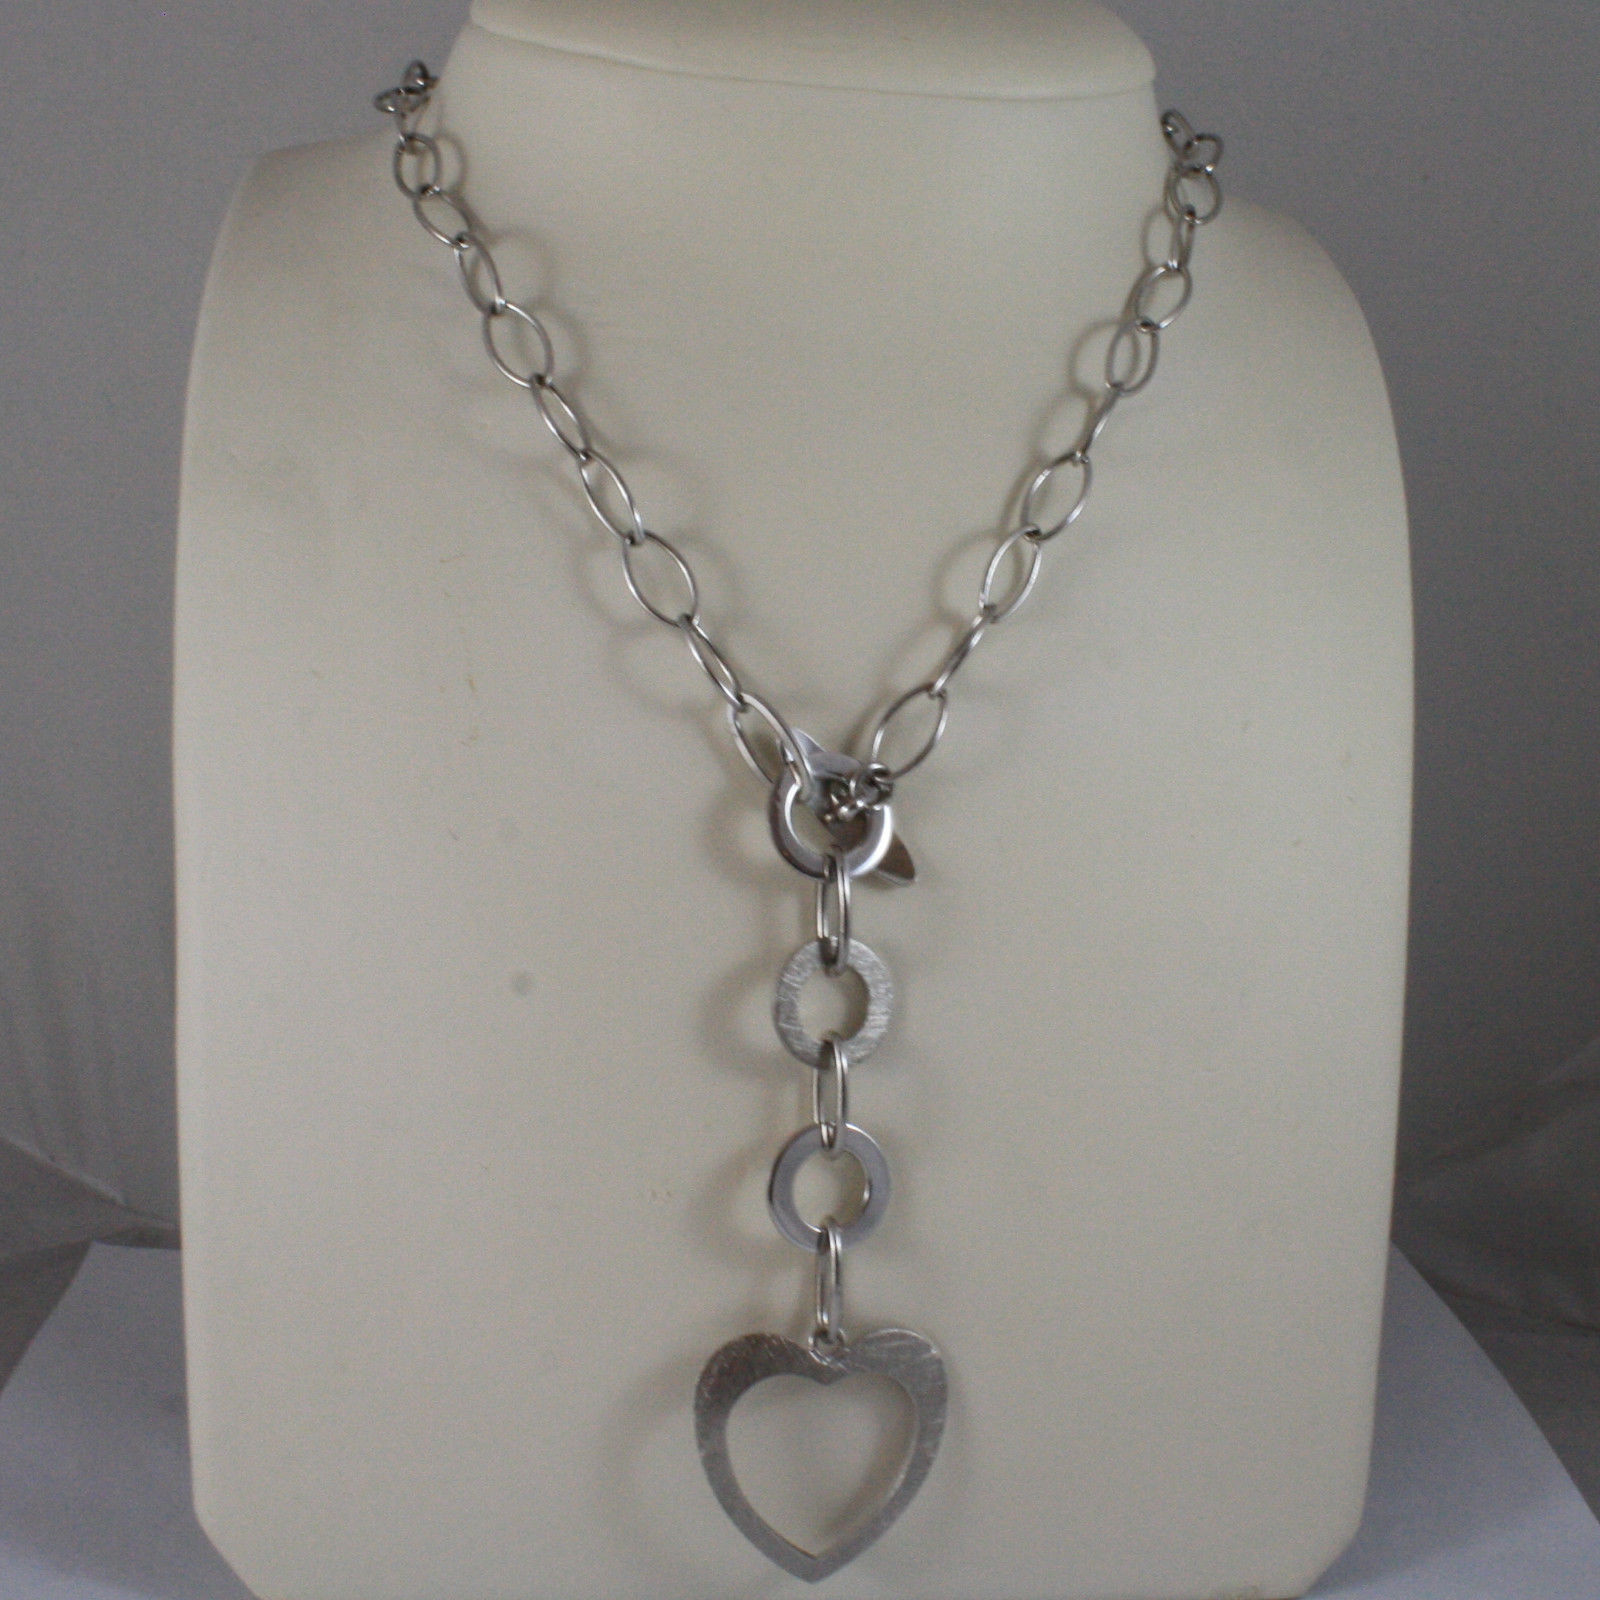 .925 SILVER RHODIUM NECKLACE WITH OVAL MESH, CIRCLES AND WORKED HEART PENDANT